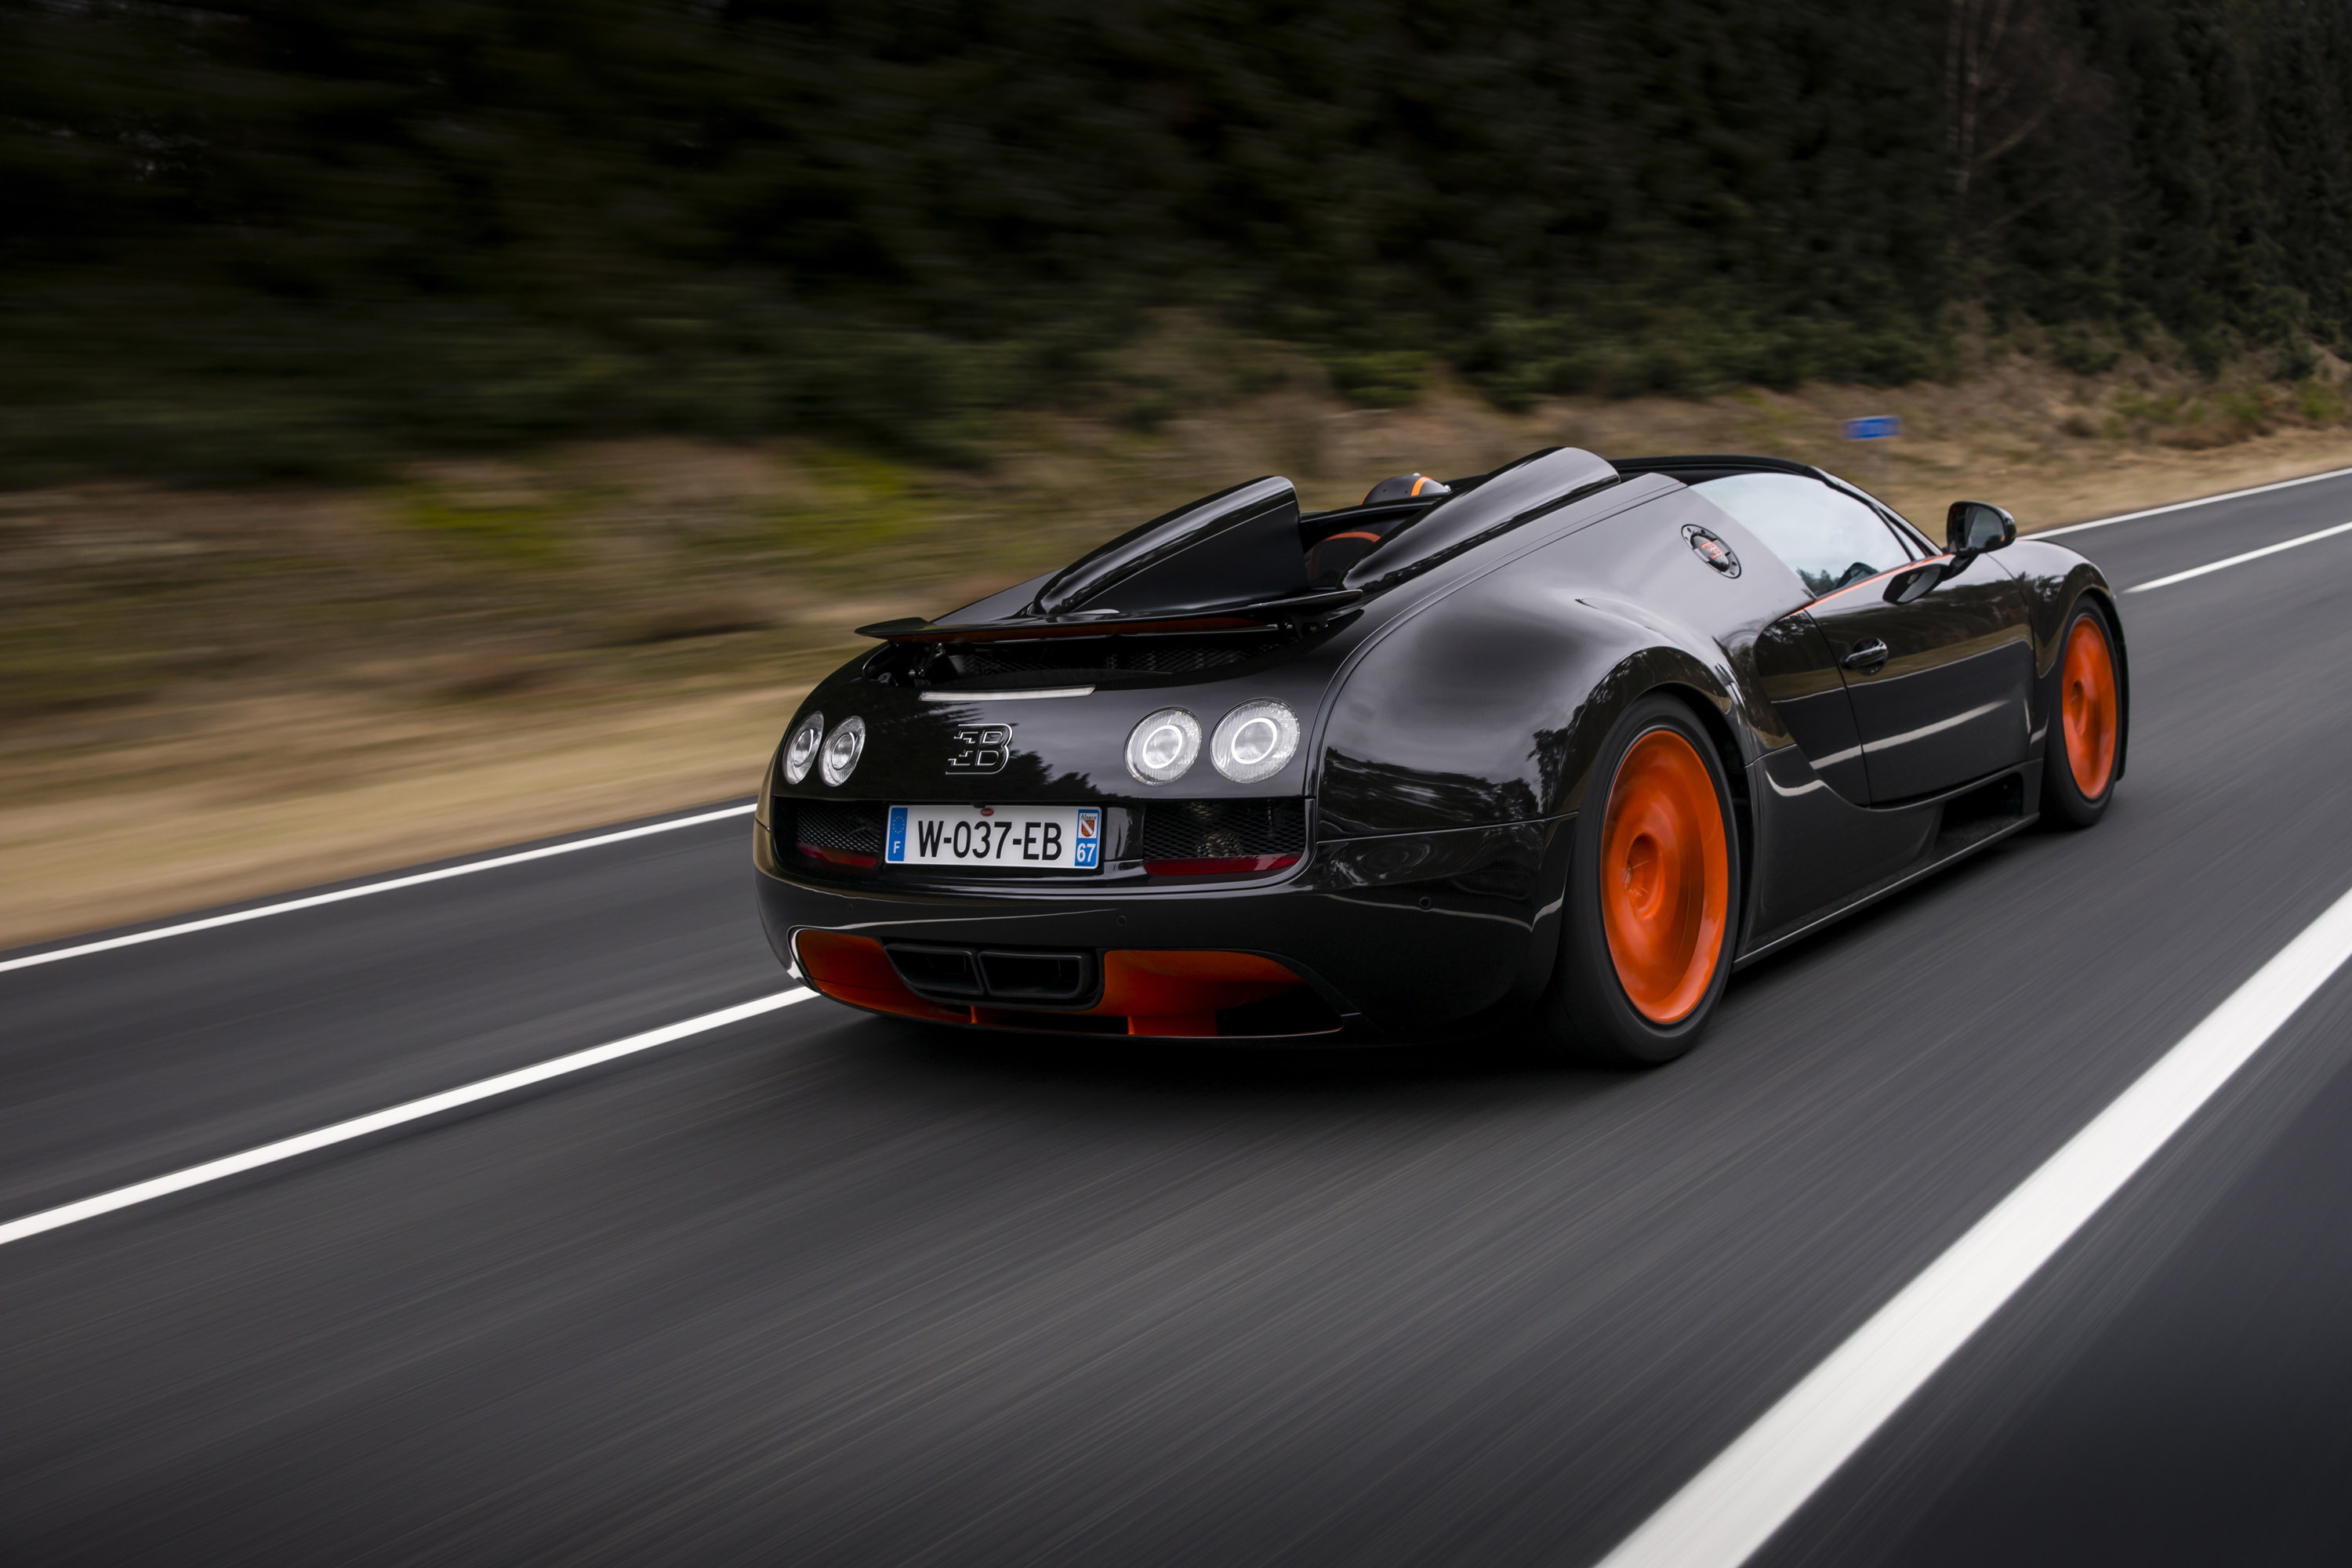 bugatti-veyron-grand-sport-vitesse-world-record-car-edition-05 Cozy Bugatti Veyron Grand Sport Vitesse Engine Cars Trend